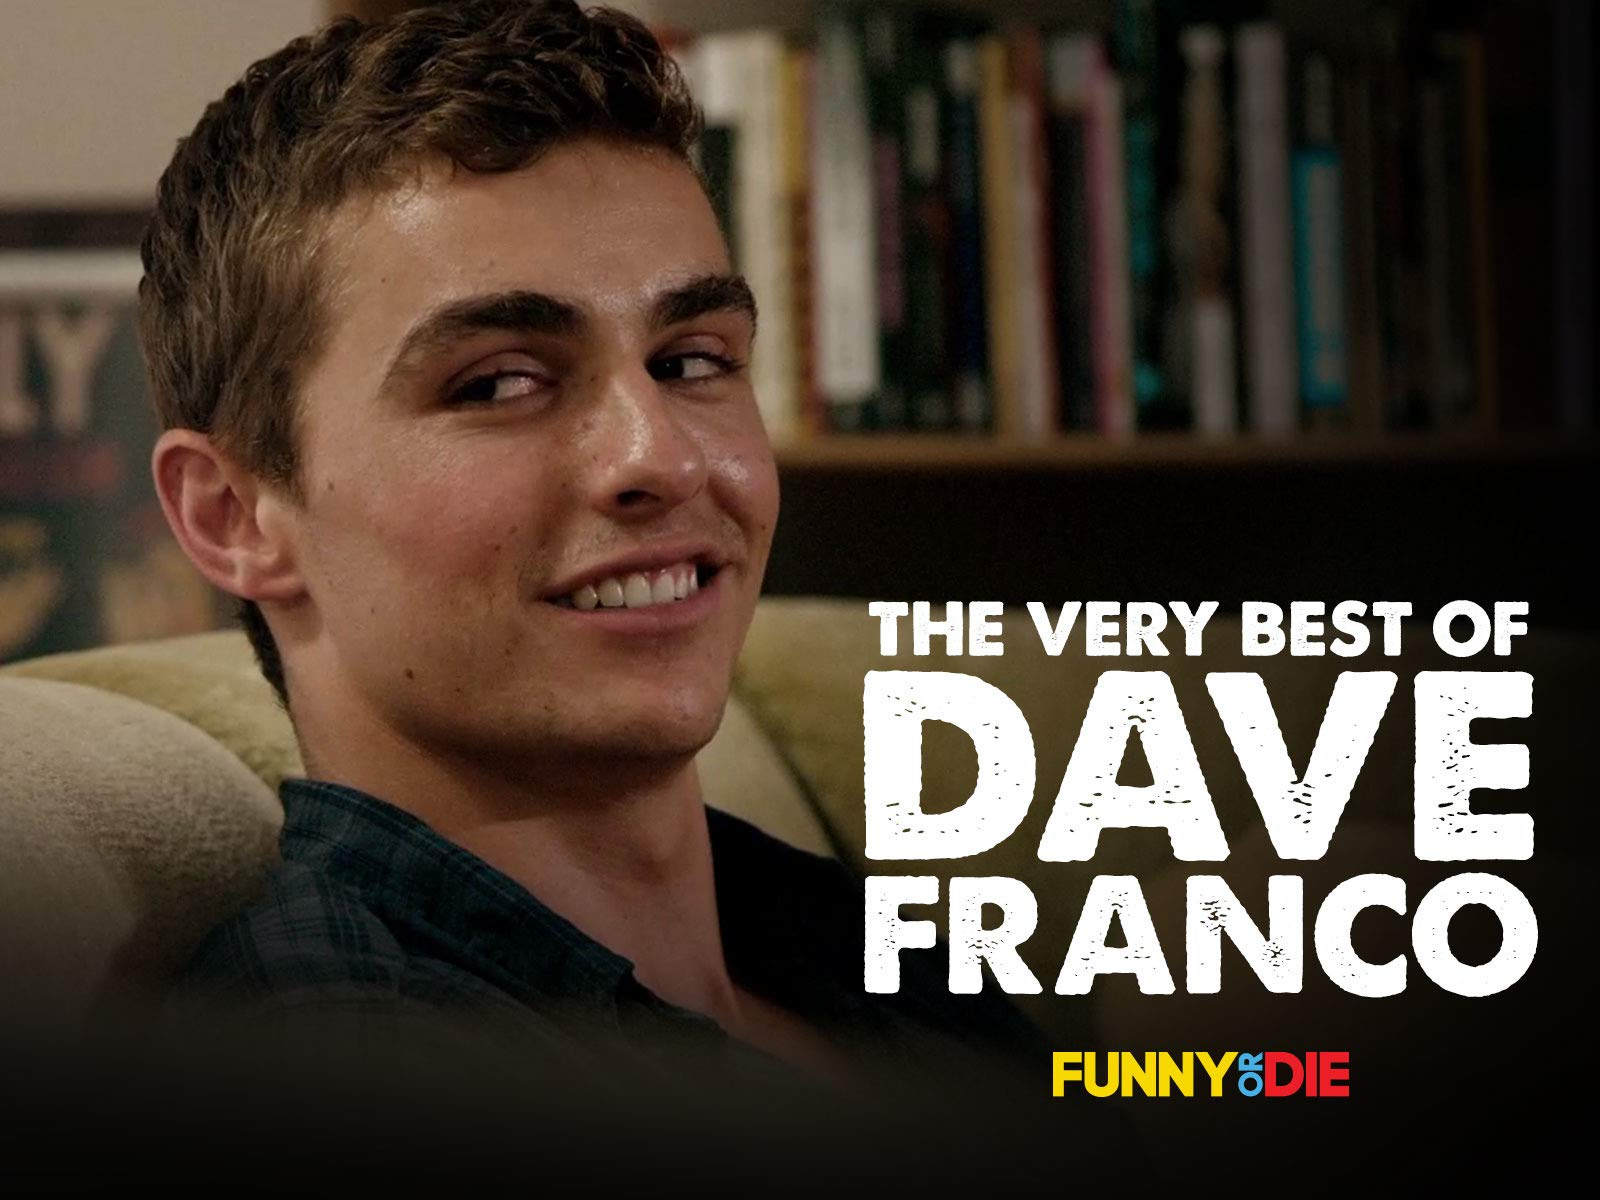 The Very Best Of Dave Franco